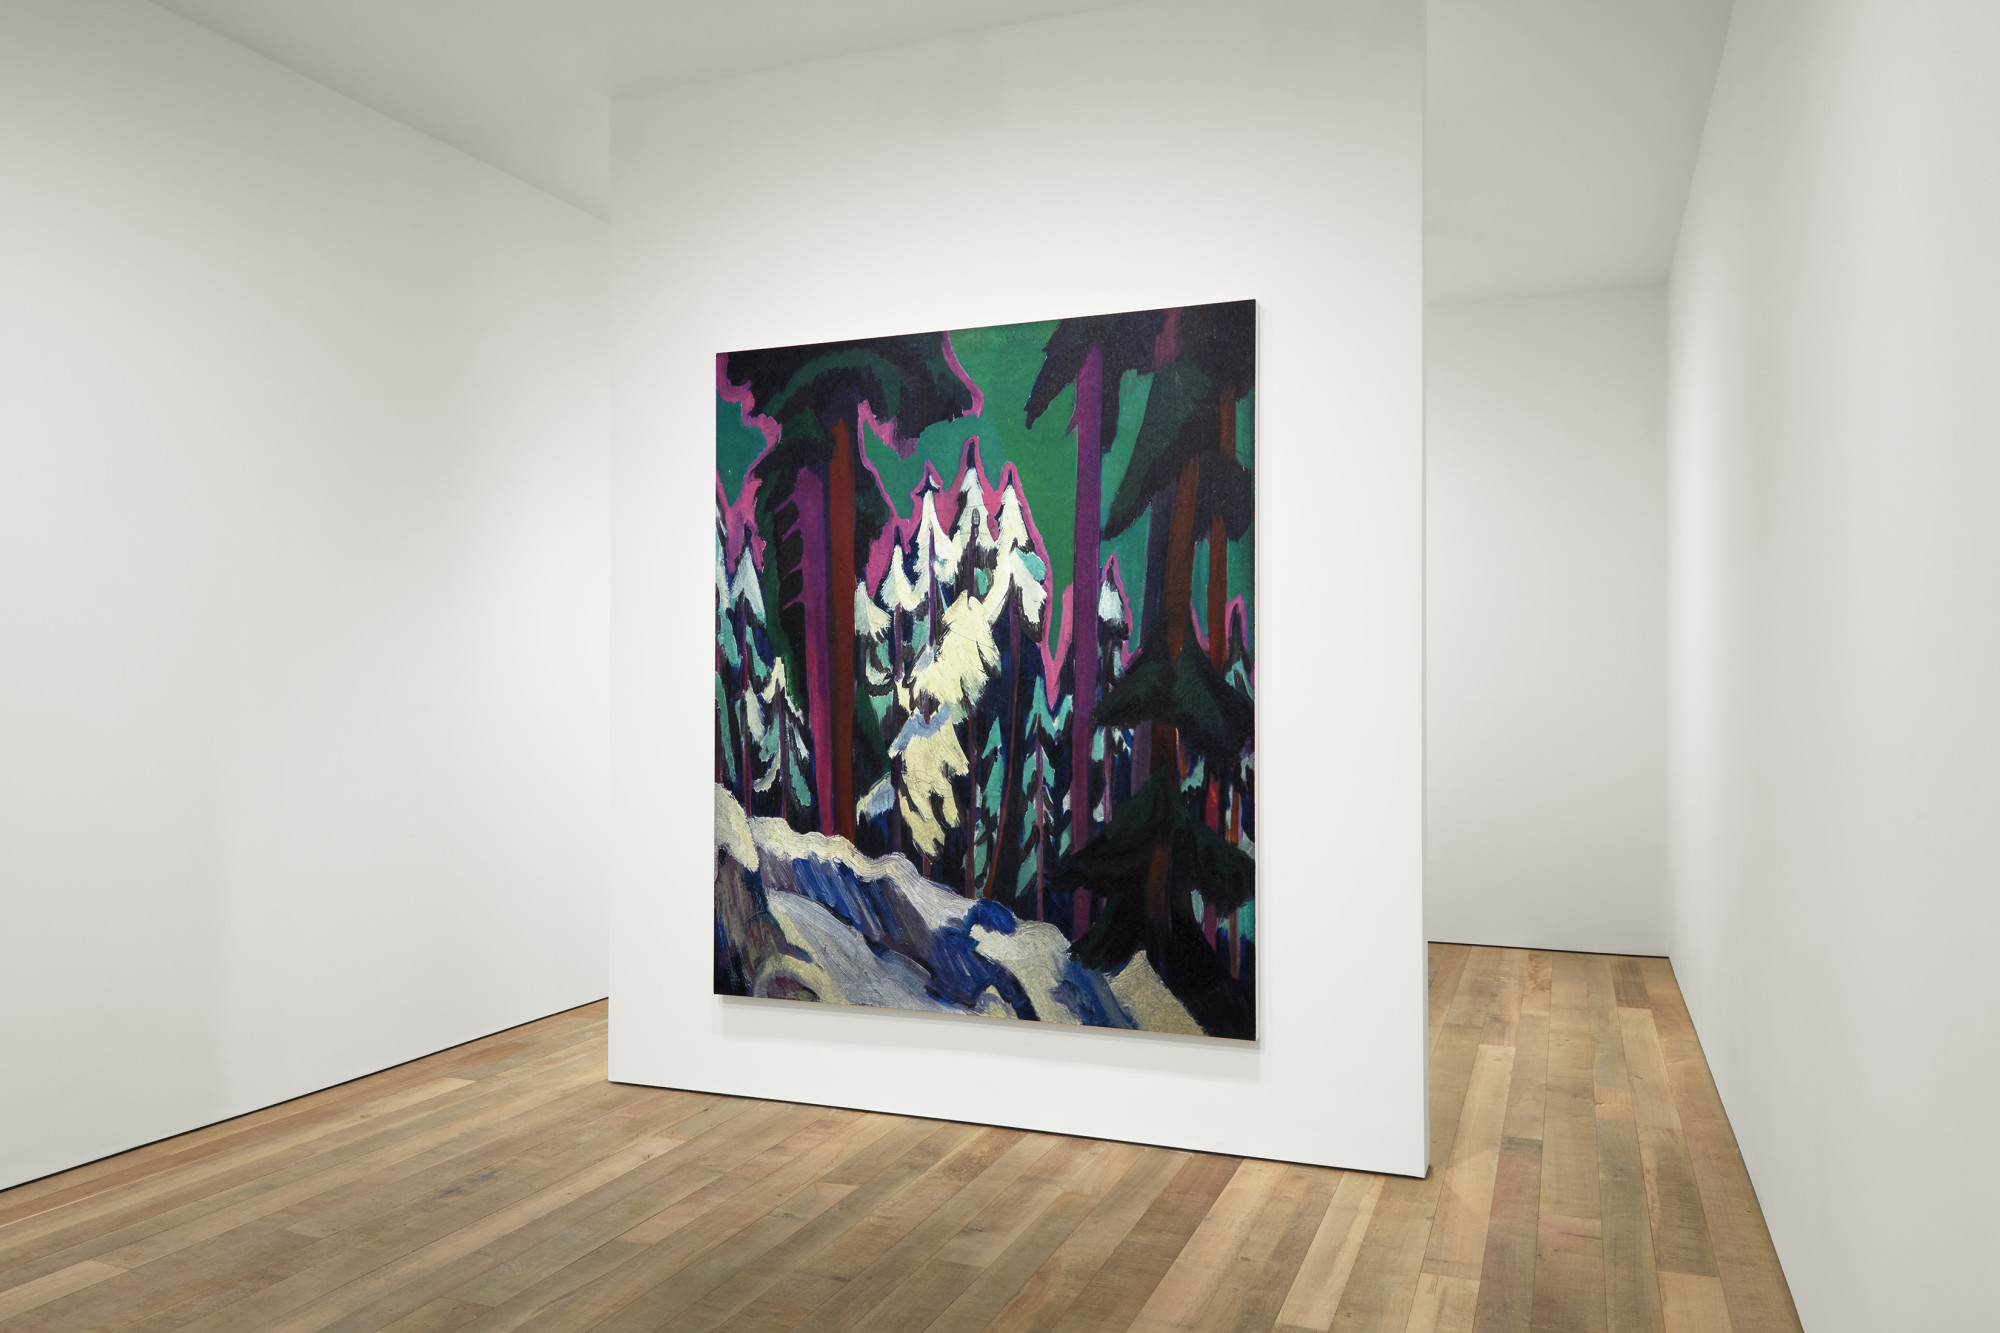 "<div class=""artwork_caption""><p>Installation view, Rudolf Stingel, <em>Kirchner Wald im Winter 1925</em>, Sadie Coles HQ, 8 Bury Street SW1Y, opening 30th March 2021</p><p>Photography by Robert Glowacki</p></div>"